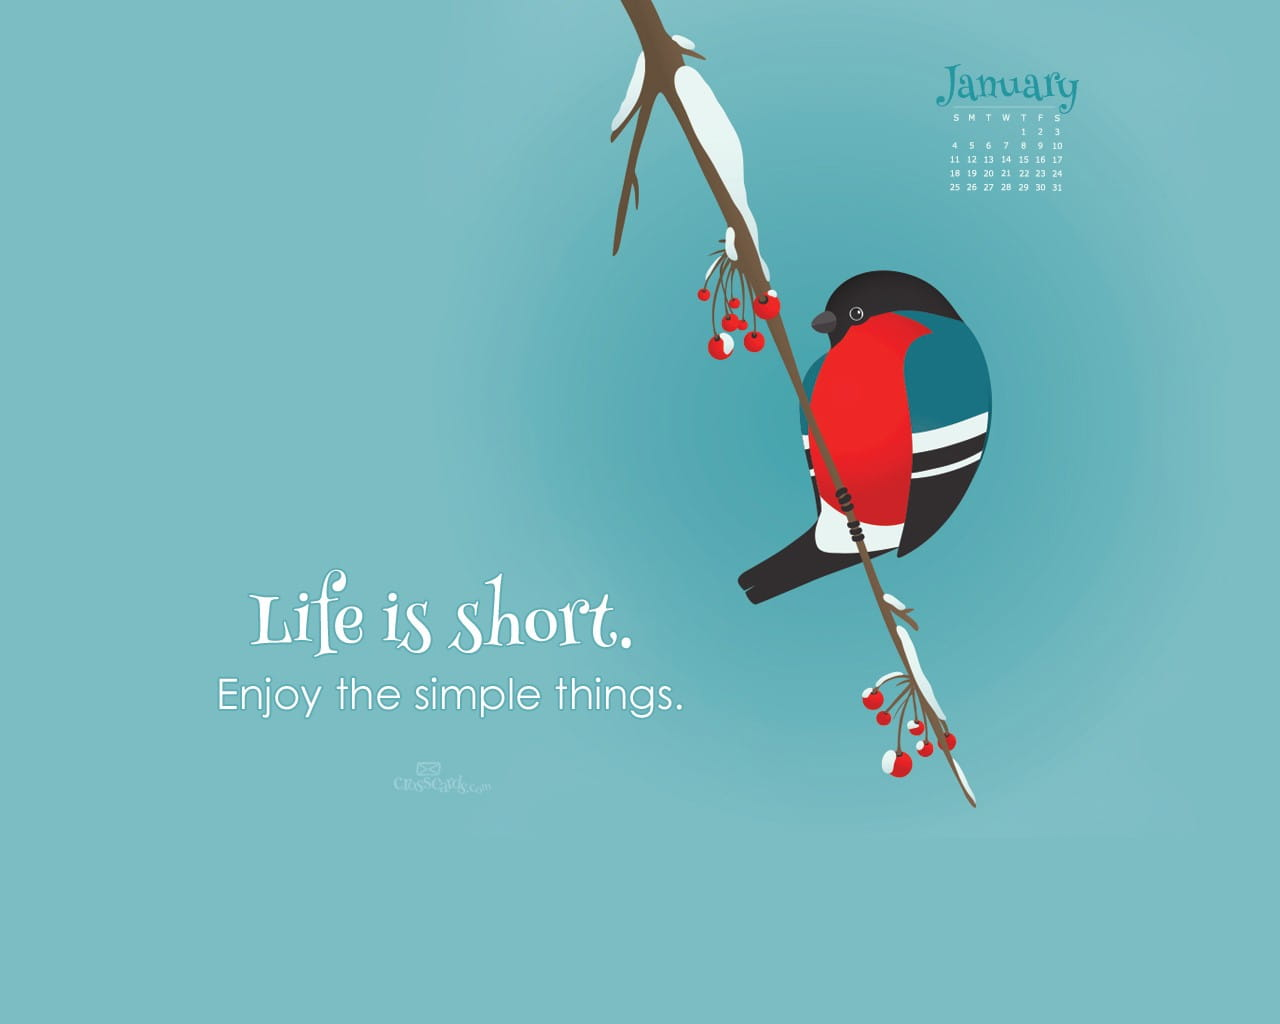 Weekly Calendar Wallpaper : January life is short desktop calendar free